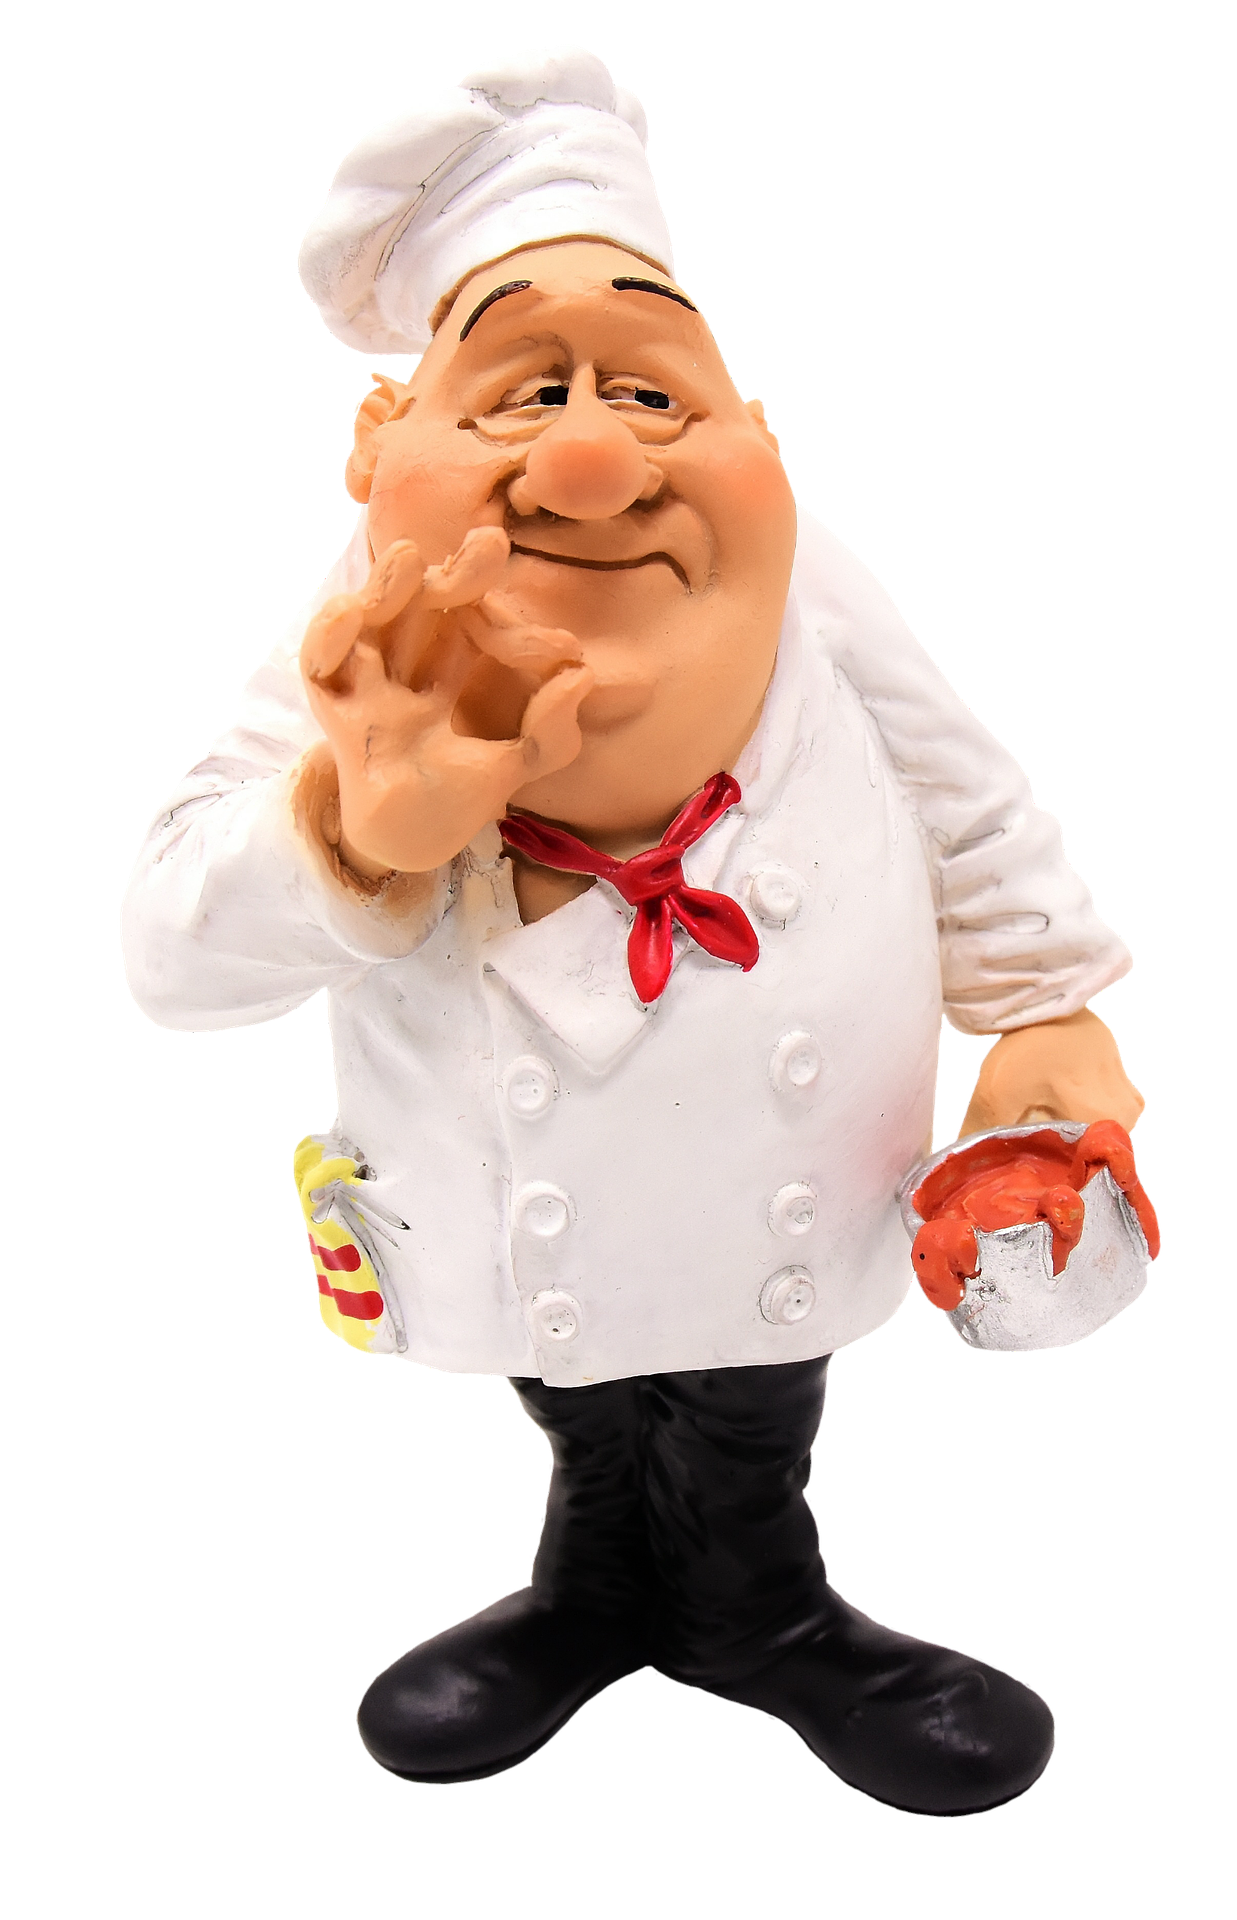 cooking-3139945_1920.png